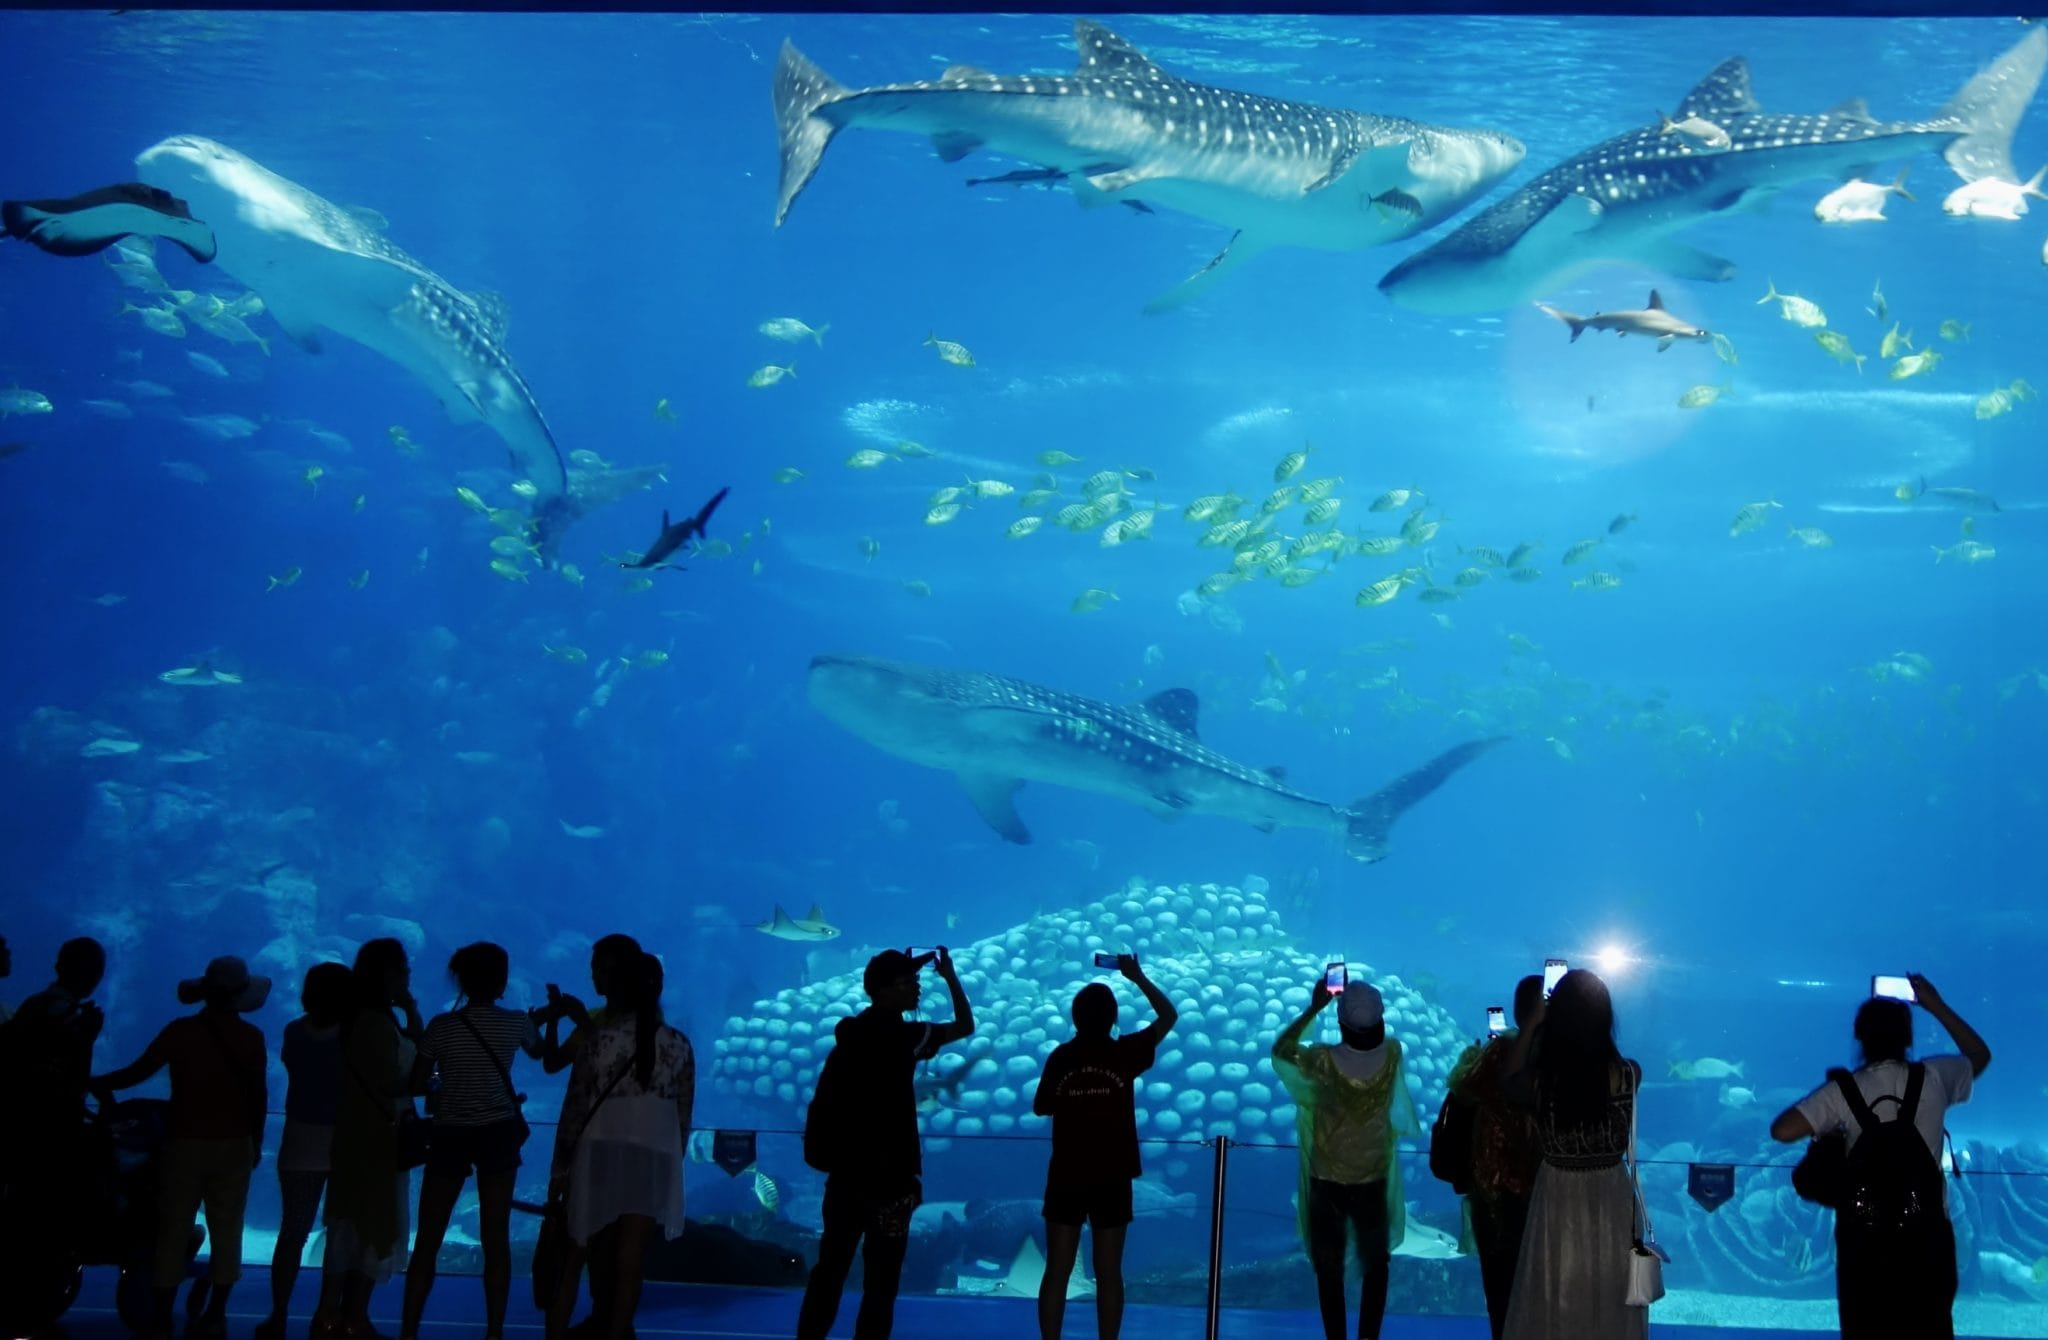 Famous windows - the breath-taking view from the largest aquarium window in the world, China's Hengqin Ocean Kingdom